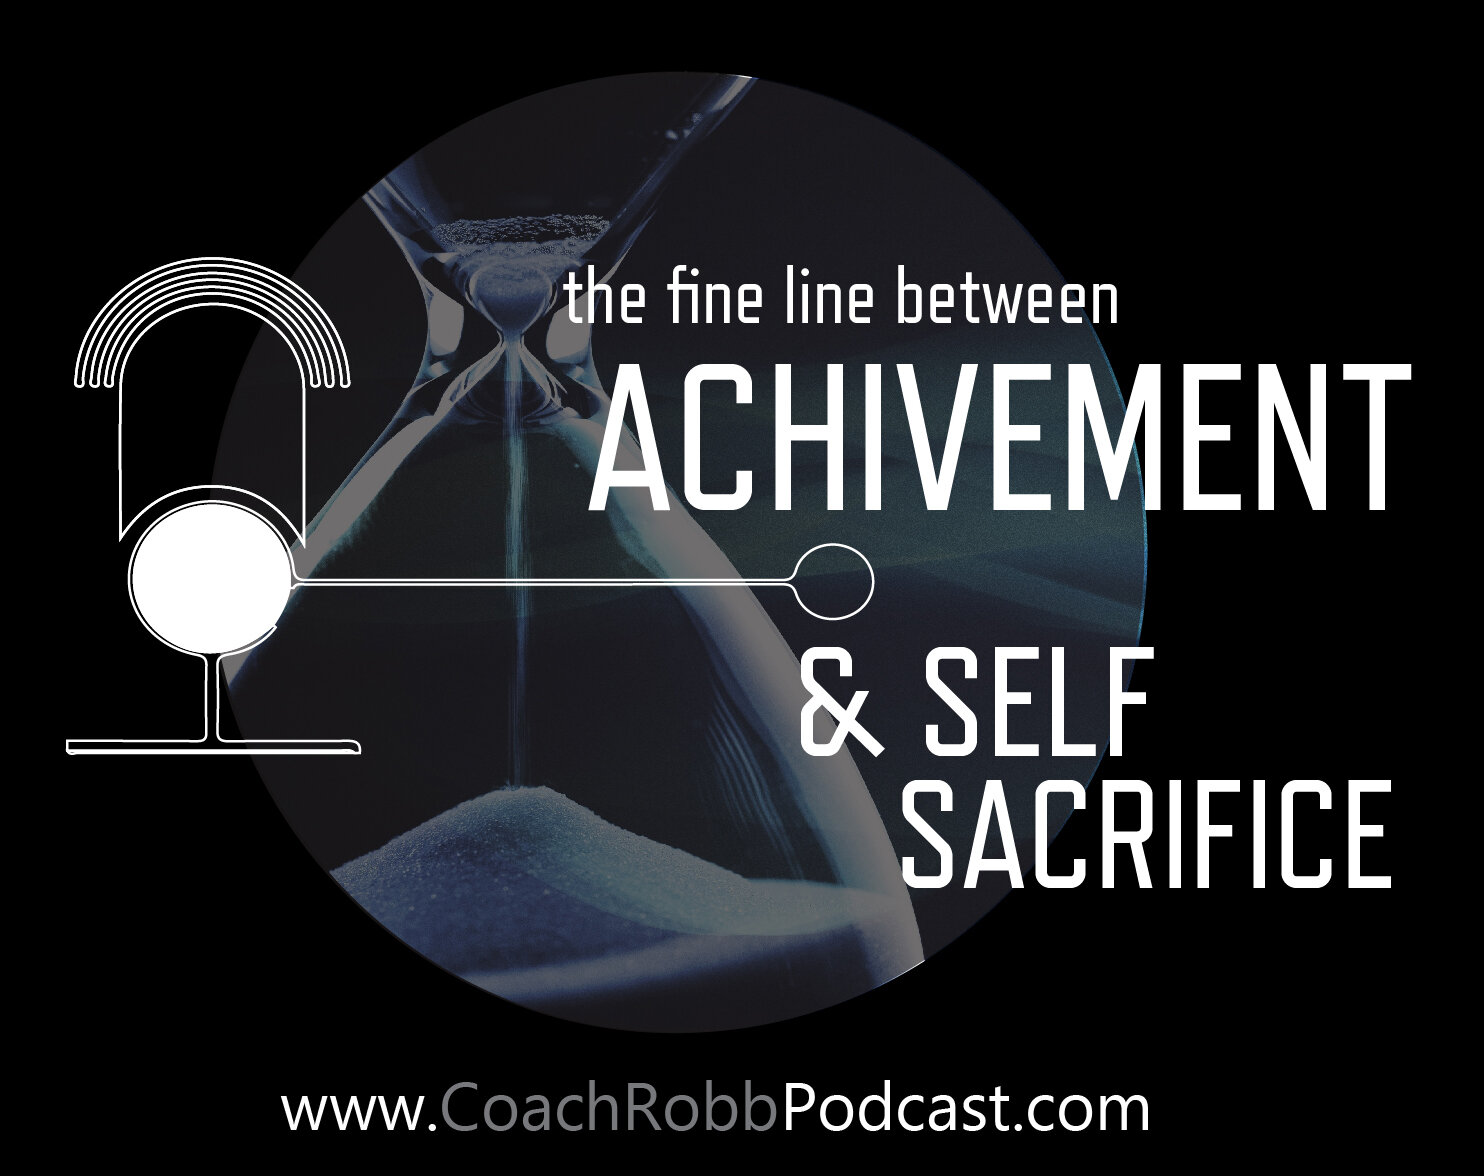 Podcast: The Fine Line Between Achievement & Self Sacrifice